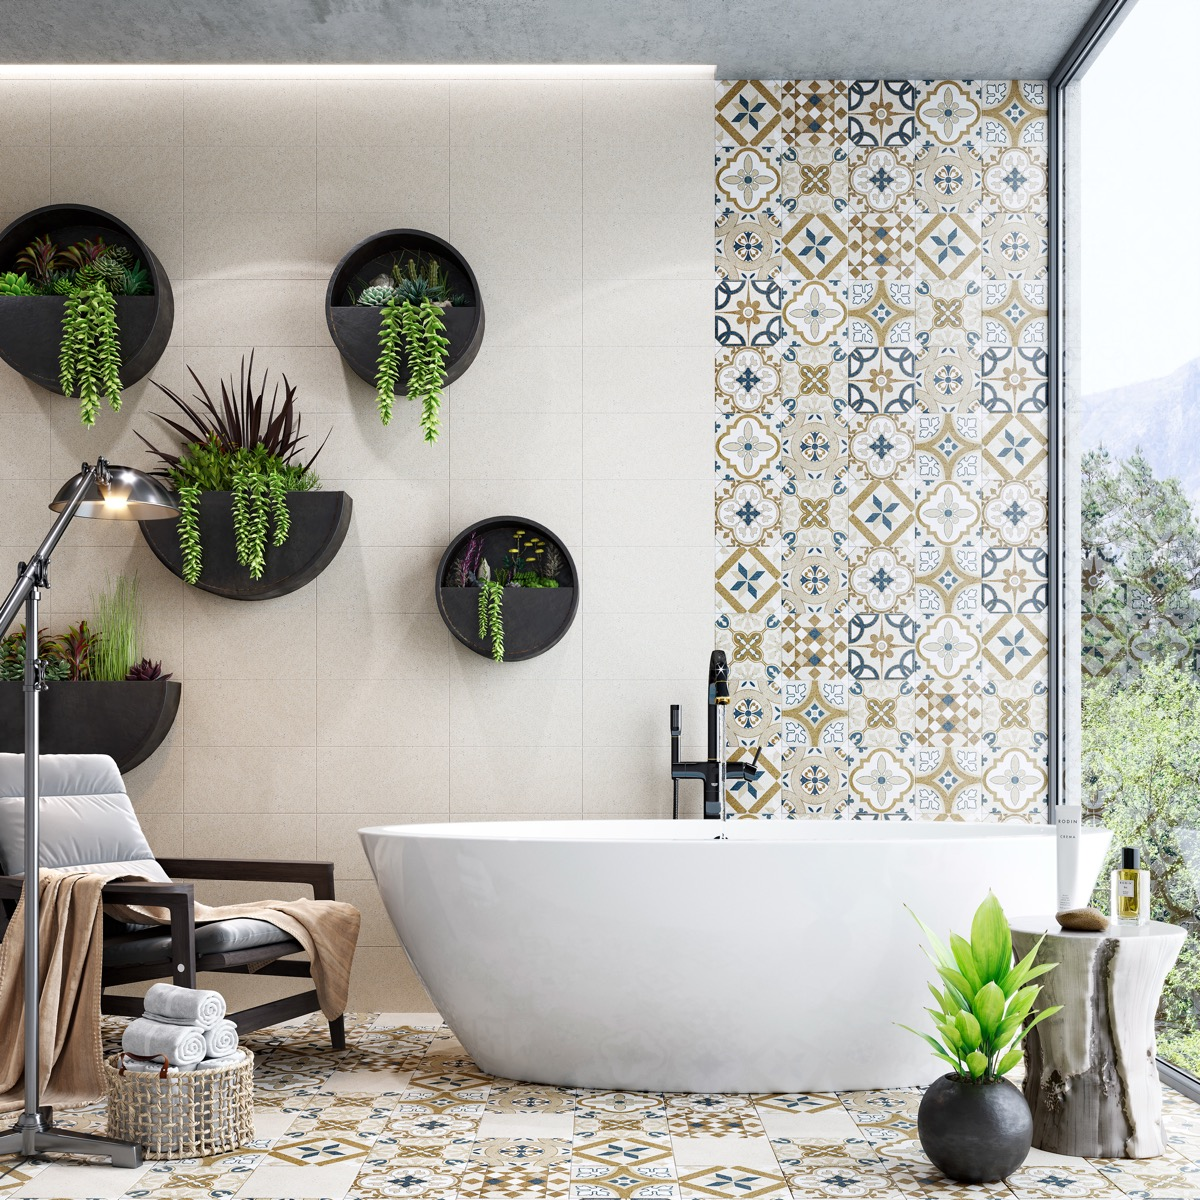 51 Modern Bathroom Design Ideas Plus Tips On How To ...